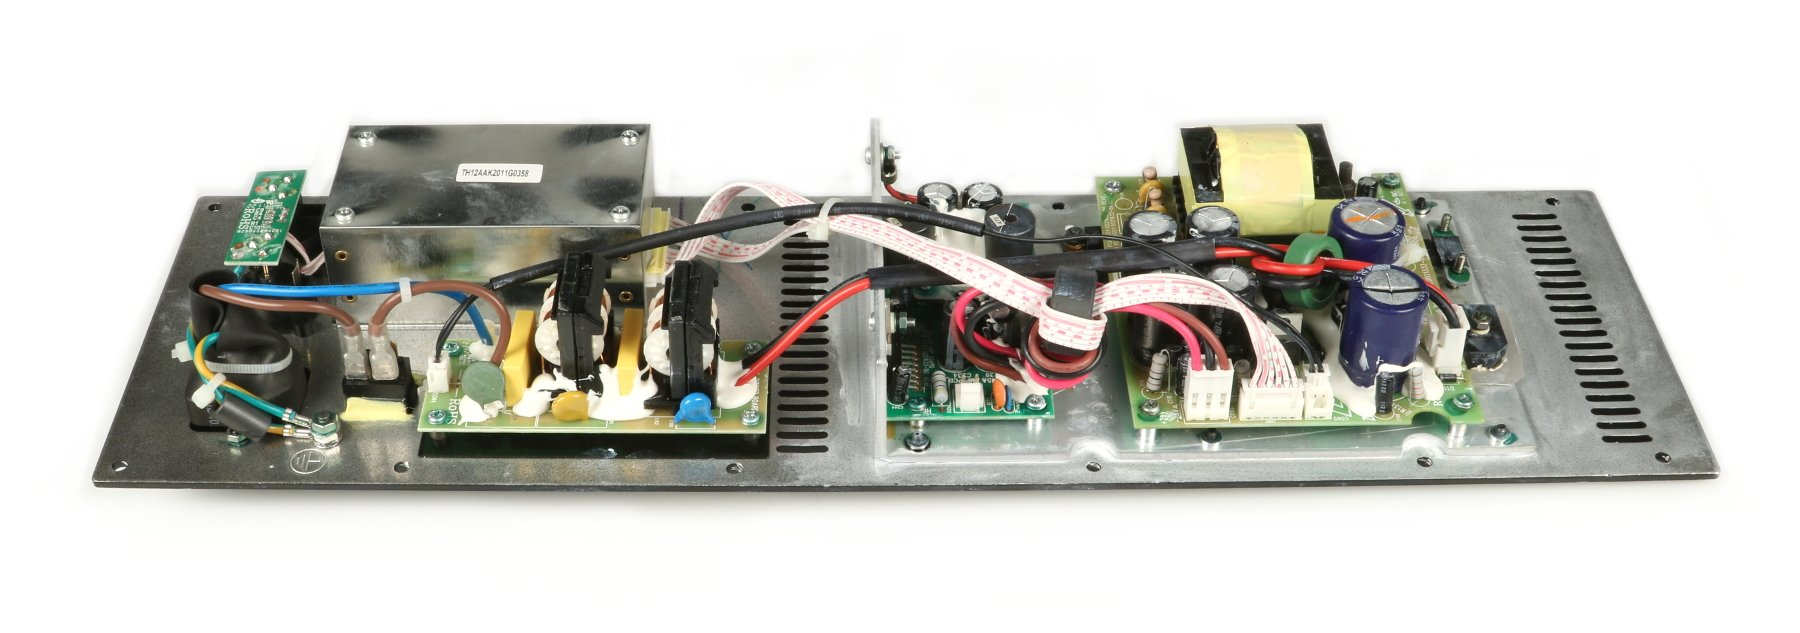 Complete Amp Assembly with Backplate for TH-12A (B-Stock)